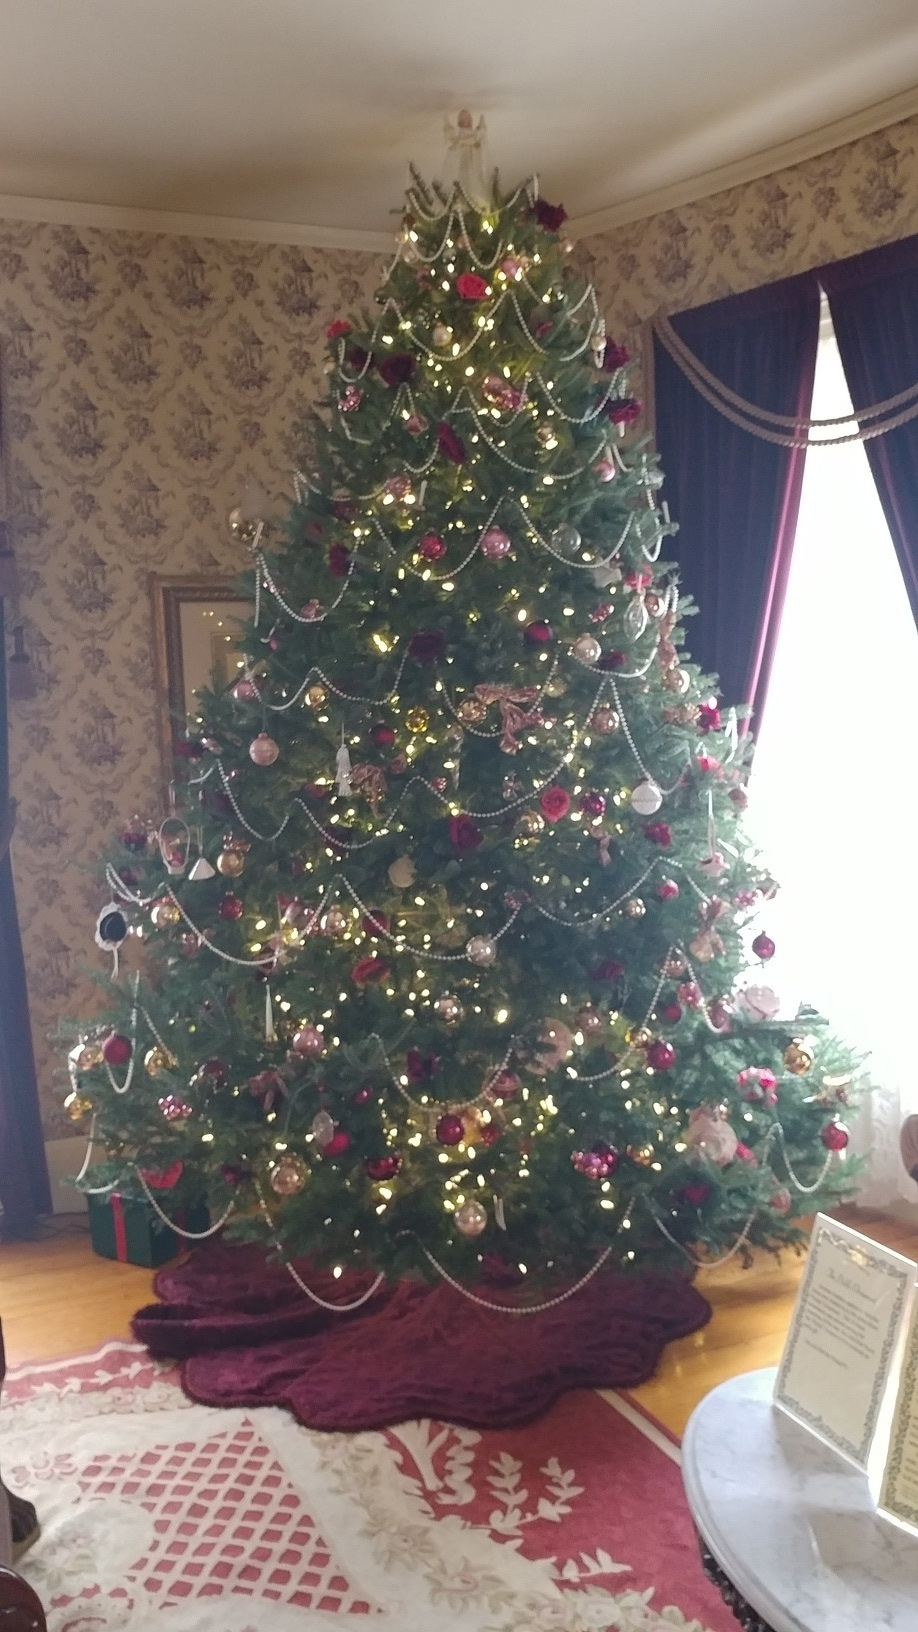 And the highlight is the grand Christmas Tree in the parlor.